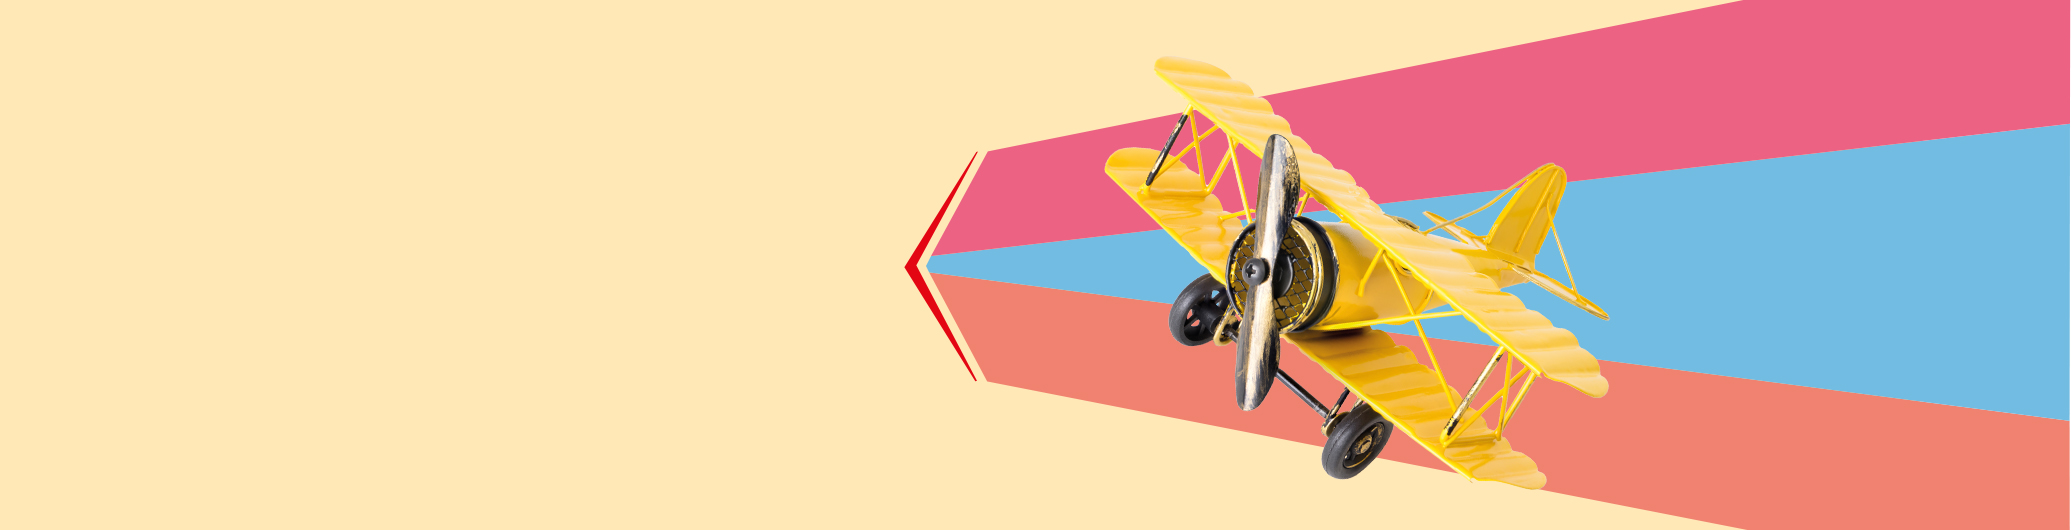 Soar to greater heights with the ICAEW CFAB qualification